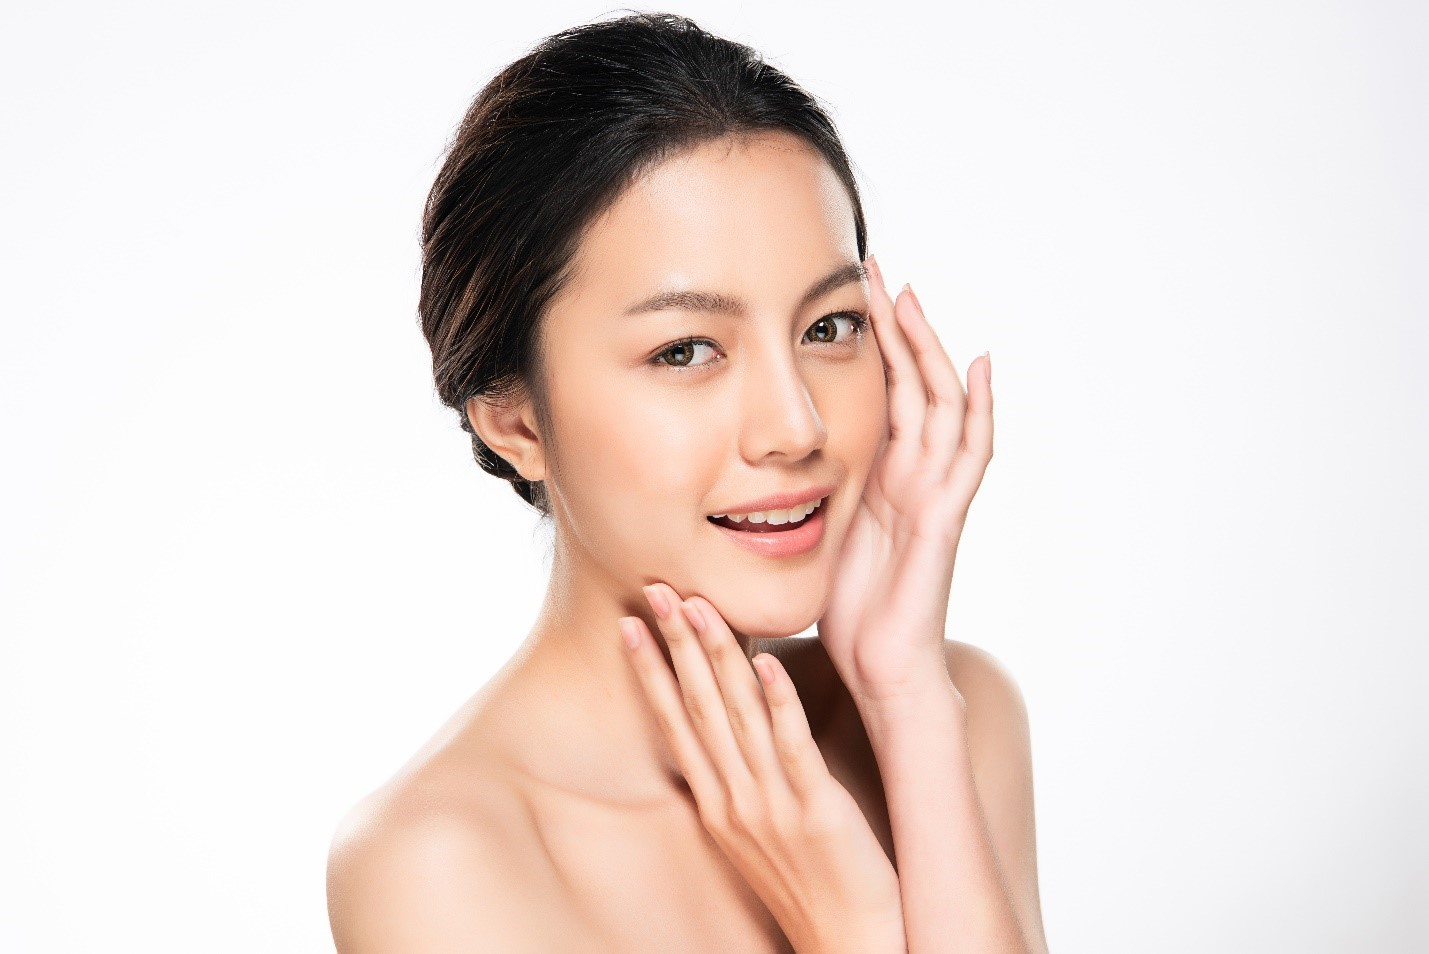 Are Plastic And Cosmetic Surgery The Same?